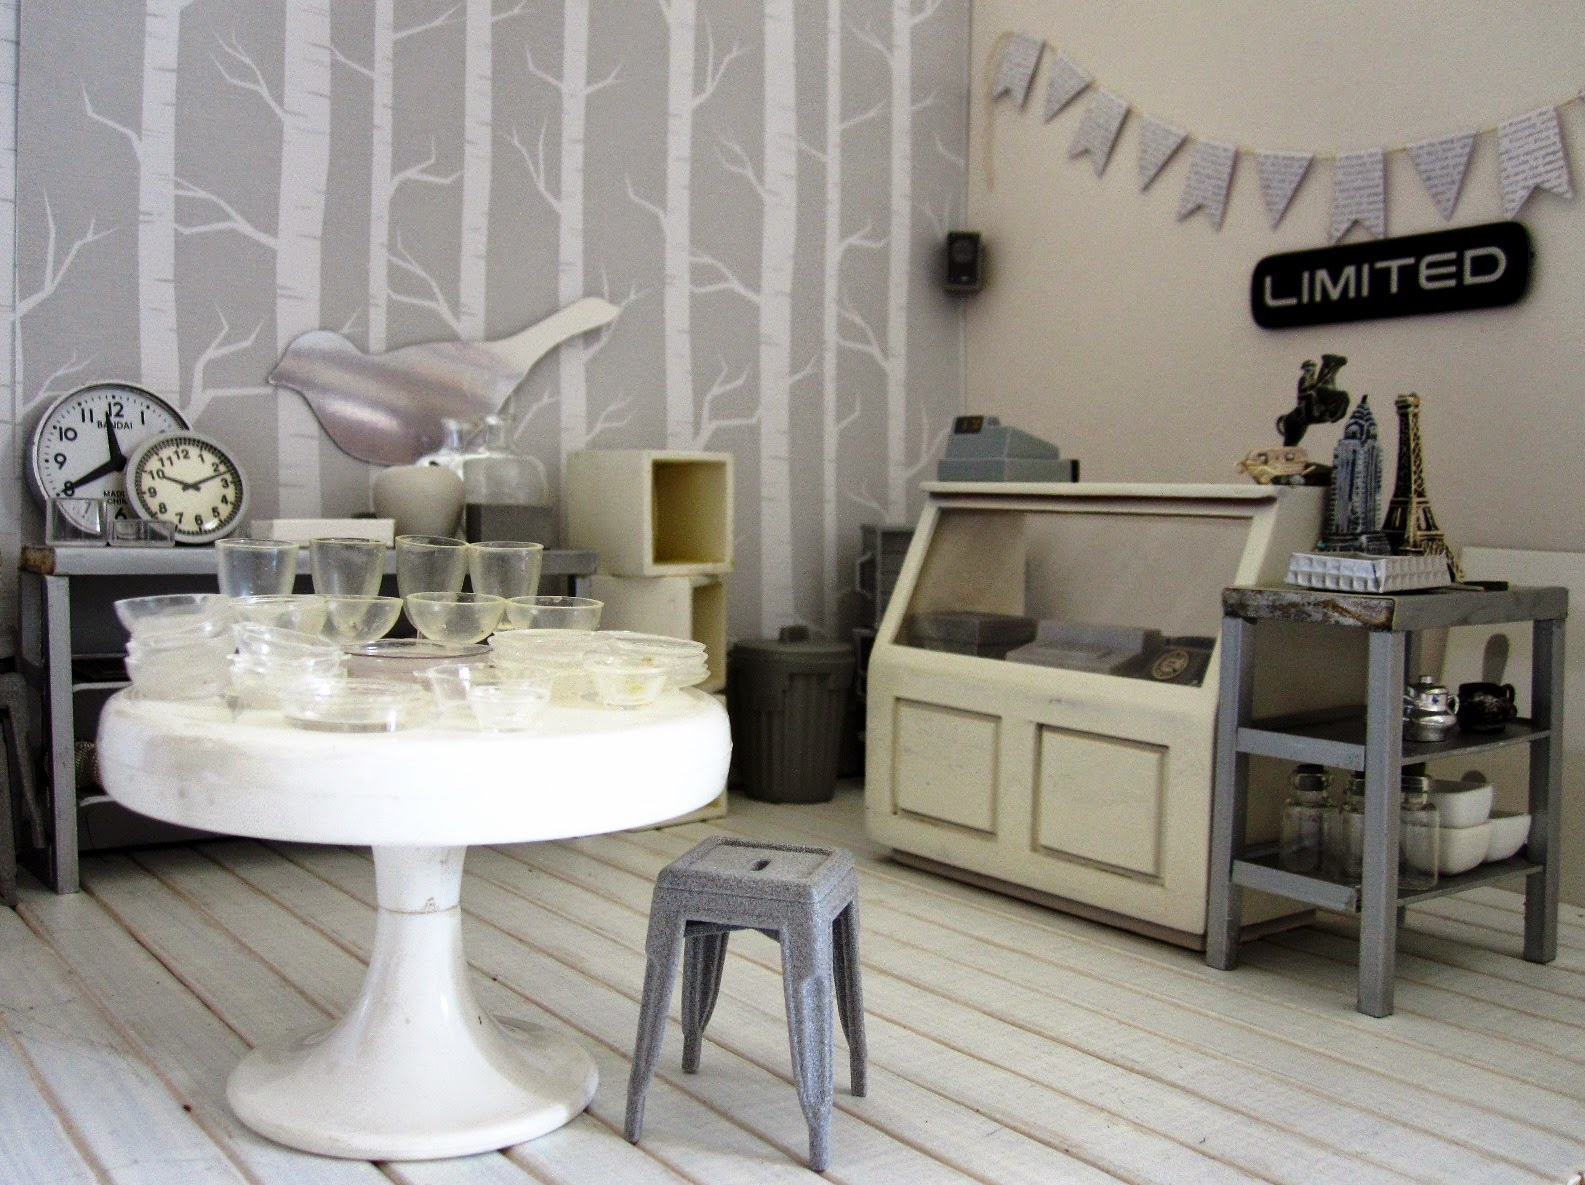 A modern dolls' house miniature homeware shop in grey and white.